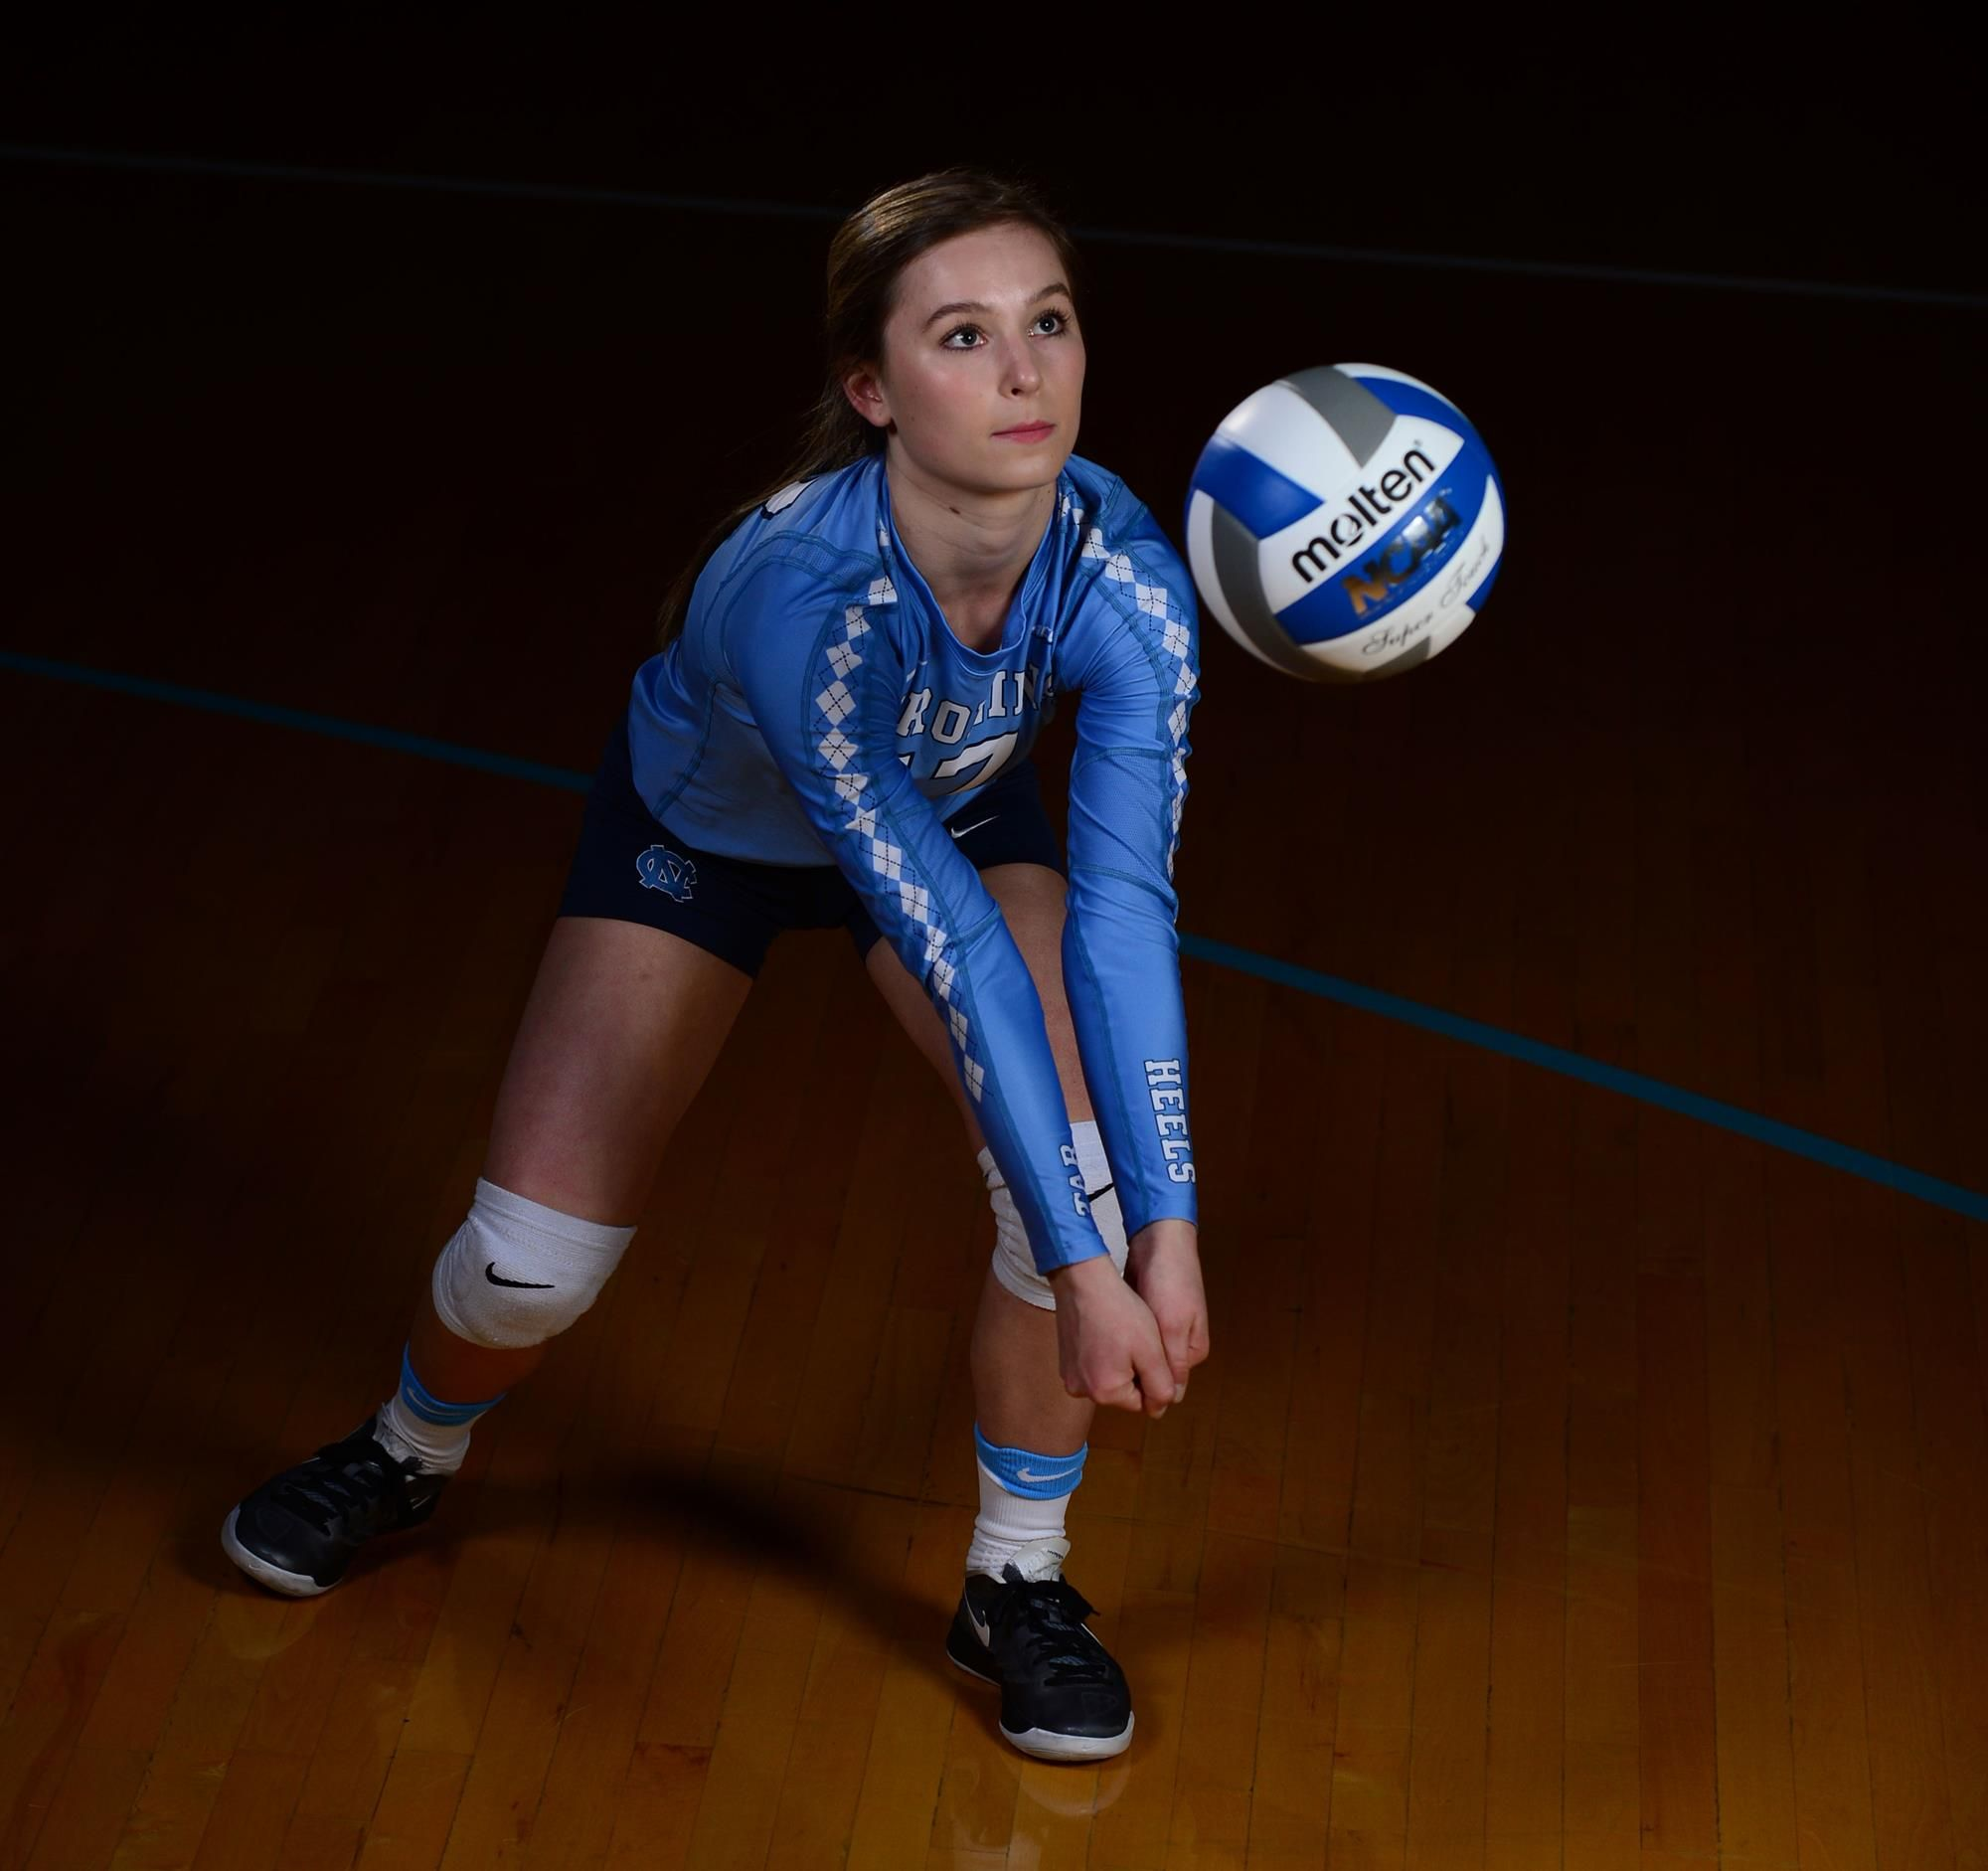 2017 First Look Defensive Specialists University Of North Carolina Athletics Volleyball News Sports Photography Athlete